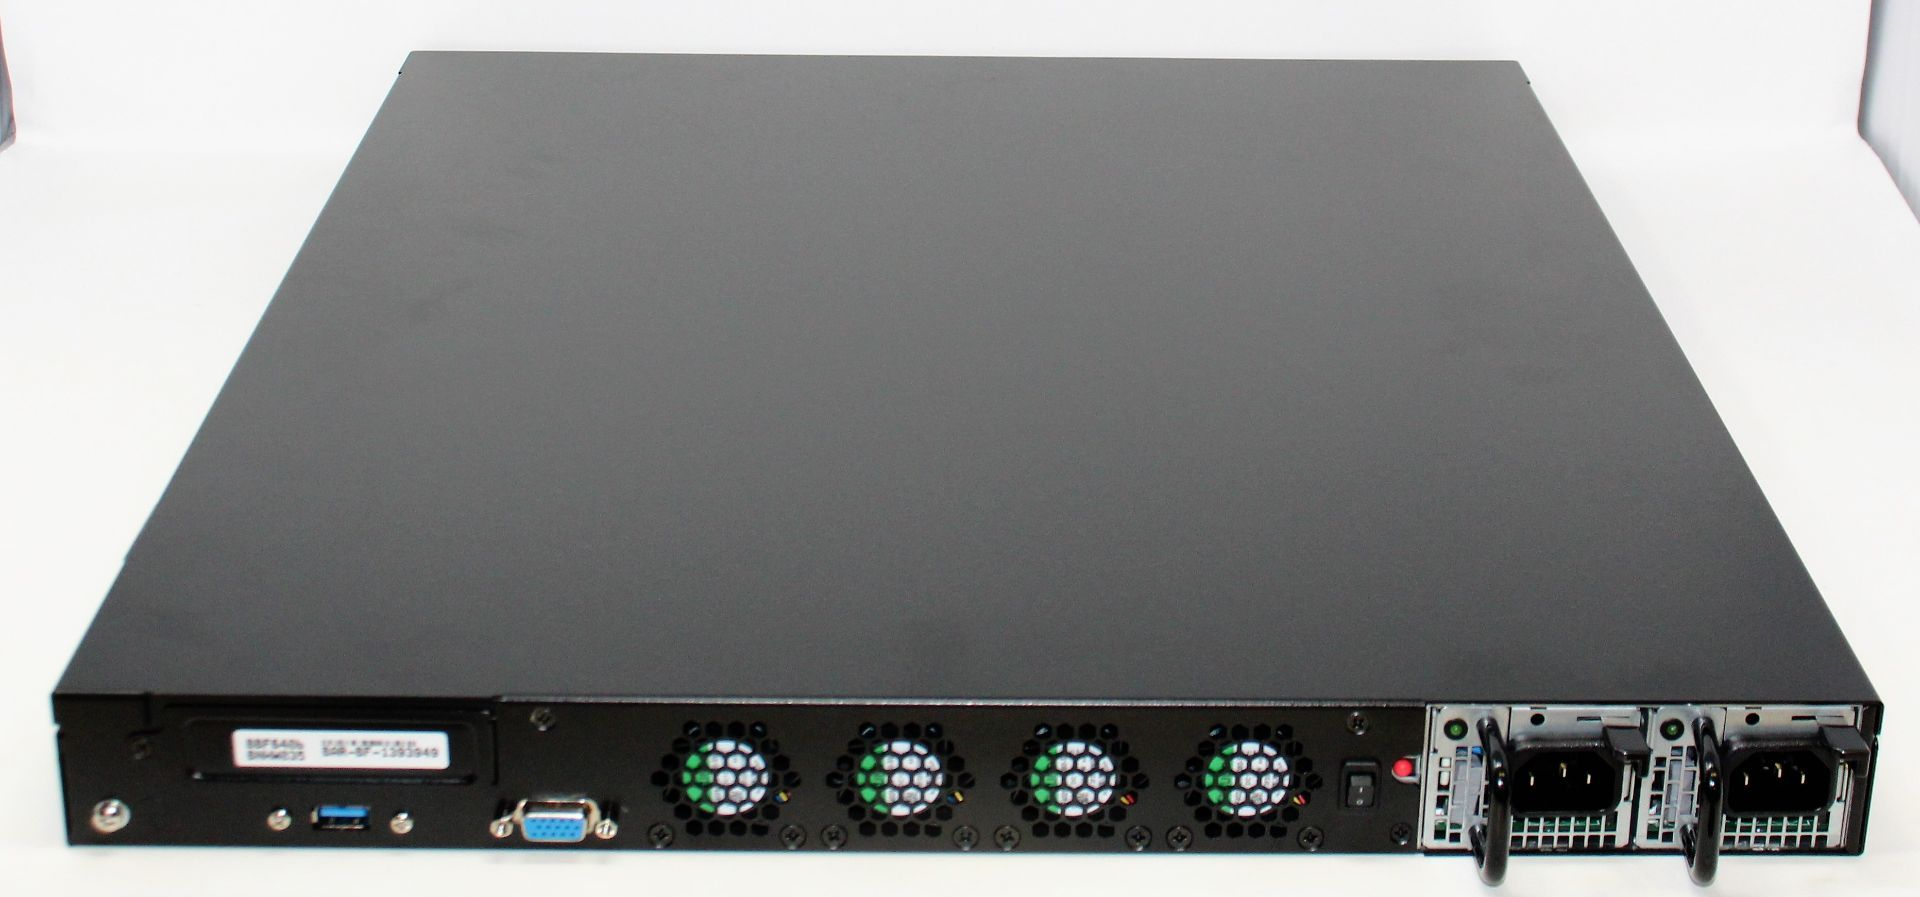 A boxed as new Barracuda Load Balancer ADC 640 (BBF640B BAR-BF-139349) (Rails, cables and manual